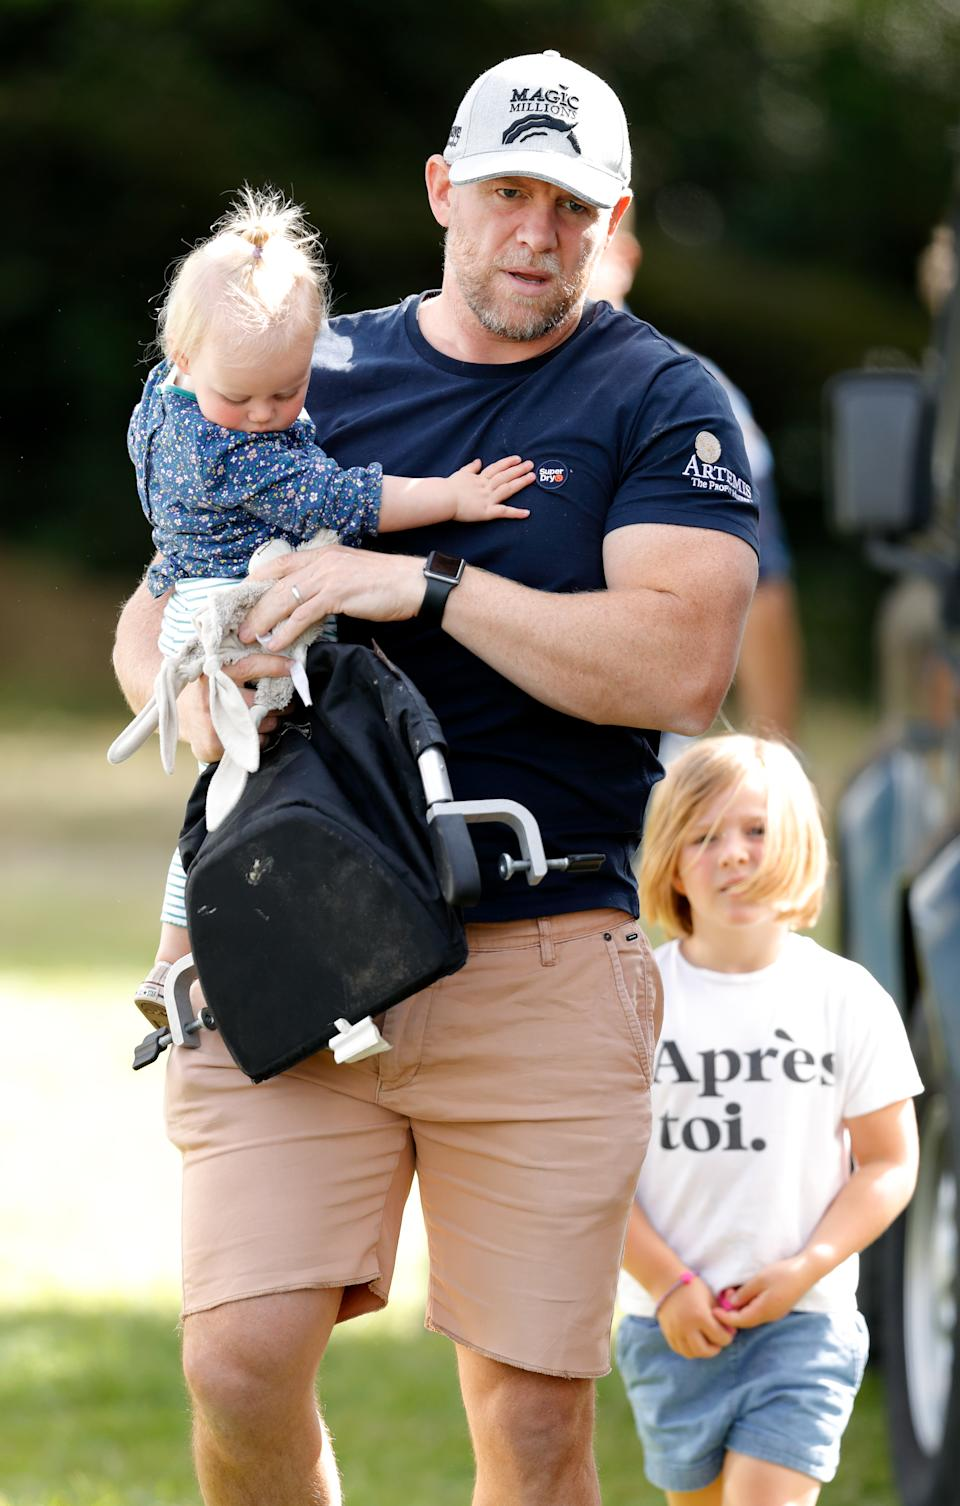 STROUD, UNITED KINGDOM - SEPTEMBER 15: (EMBARGOED FOR PUBLICATION IN UK NEWSPAPERS UNTIL 24 HOURS AFTER CREATE DATE AND TIME) Mike Tindall and daughters Lena Tindall and Mia Tindall attend day 3 of the Whatley Manor Gatcombe International Horse Trials at Gatcombe Park on September 15, 2019 in Stroud, England. (Photo by Max Mumby/Indigo/Getty Images)